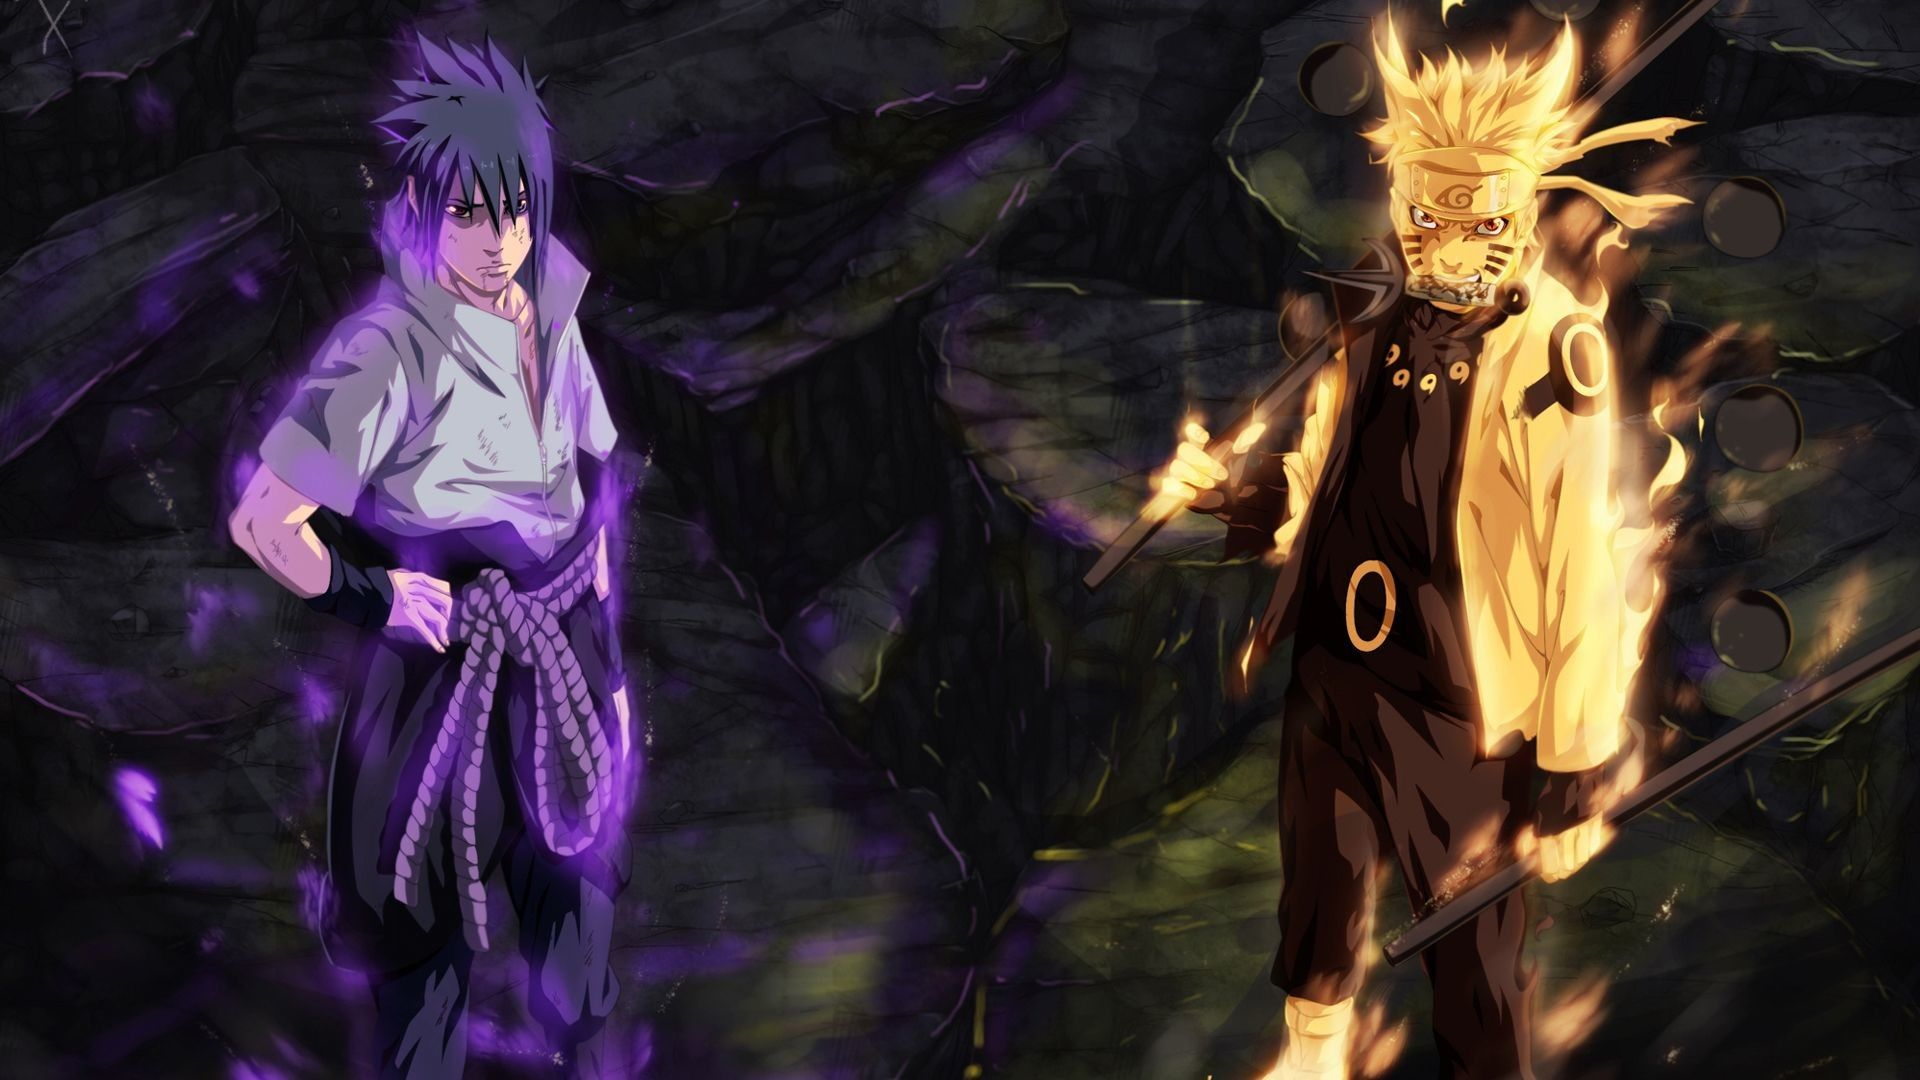 Res 1920x1080 Naruto And Sasuke Wallpaper Engine Full Wallpaper Engine Free In 2020 Naruto And Sasuke Wallpaper Naruto Wallpaper Anime Wallpaper